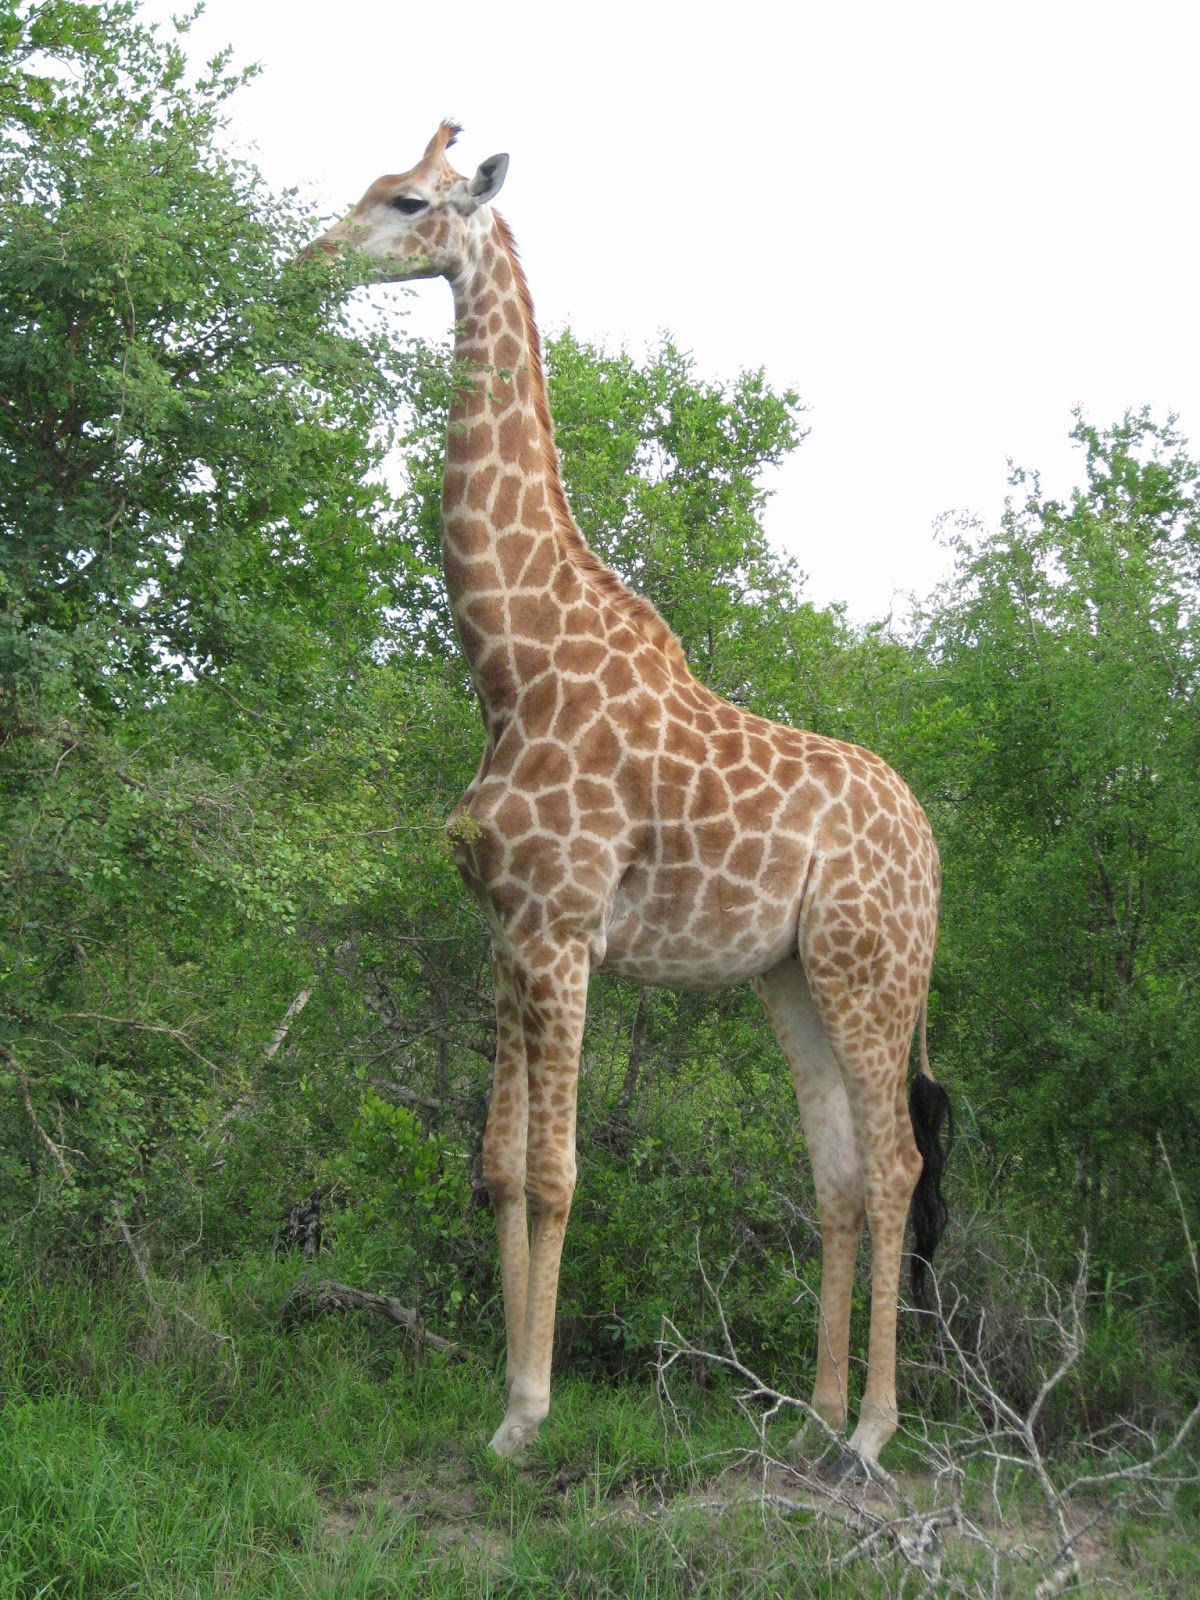 Sabi Sands - Giraffe feasting on some tall trees